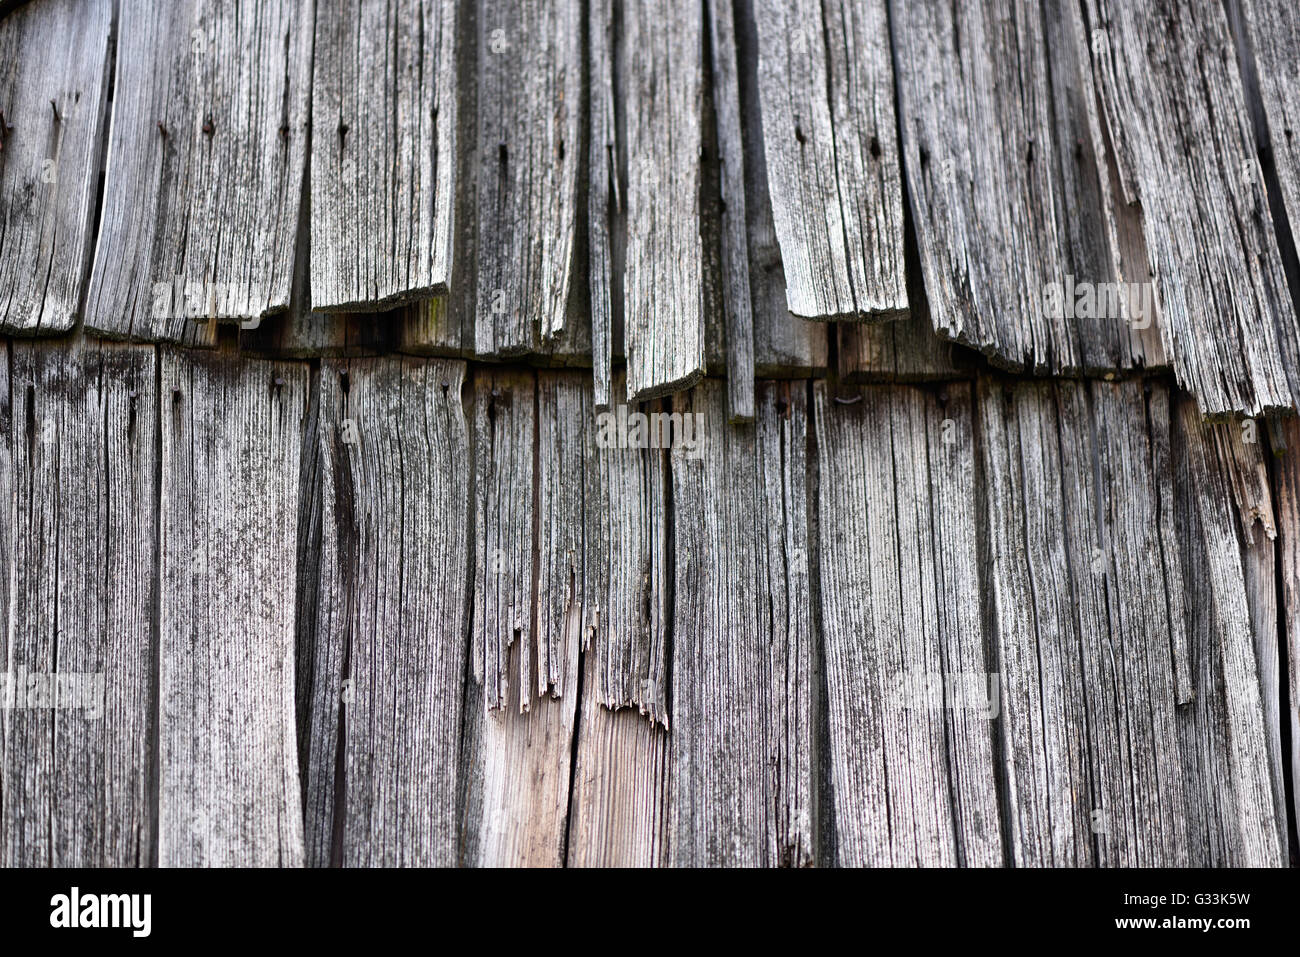 Obsolete wood planks from an old house roof - Stock Image